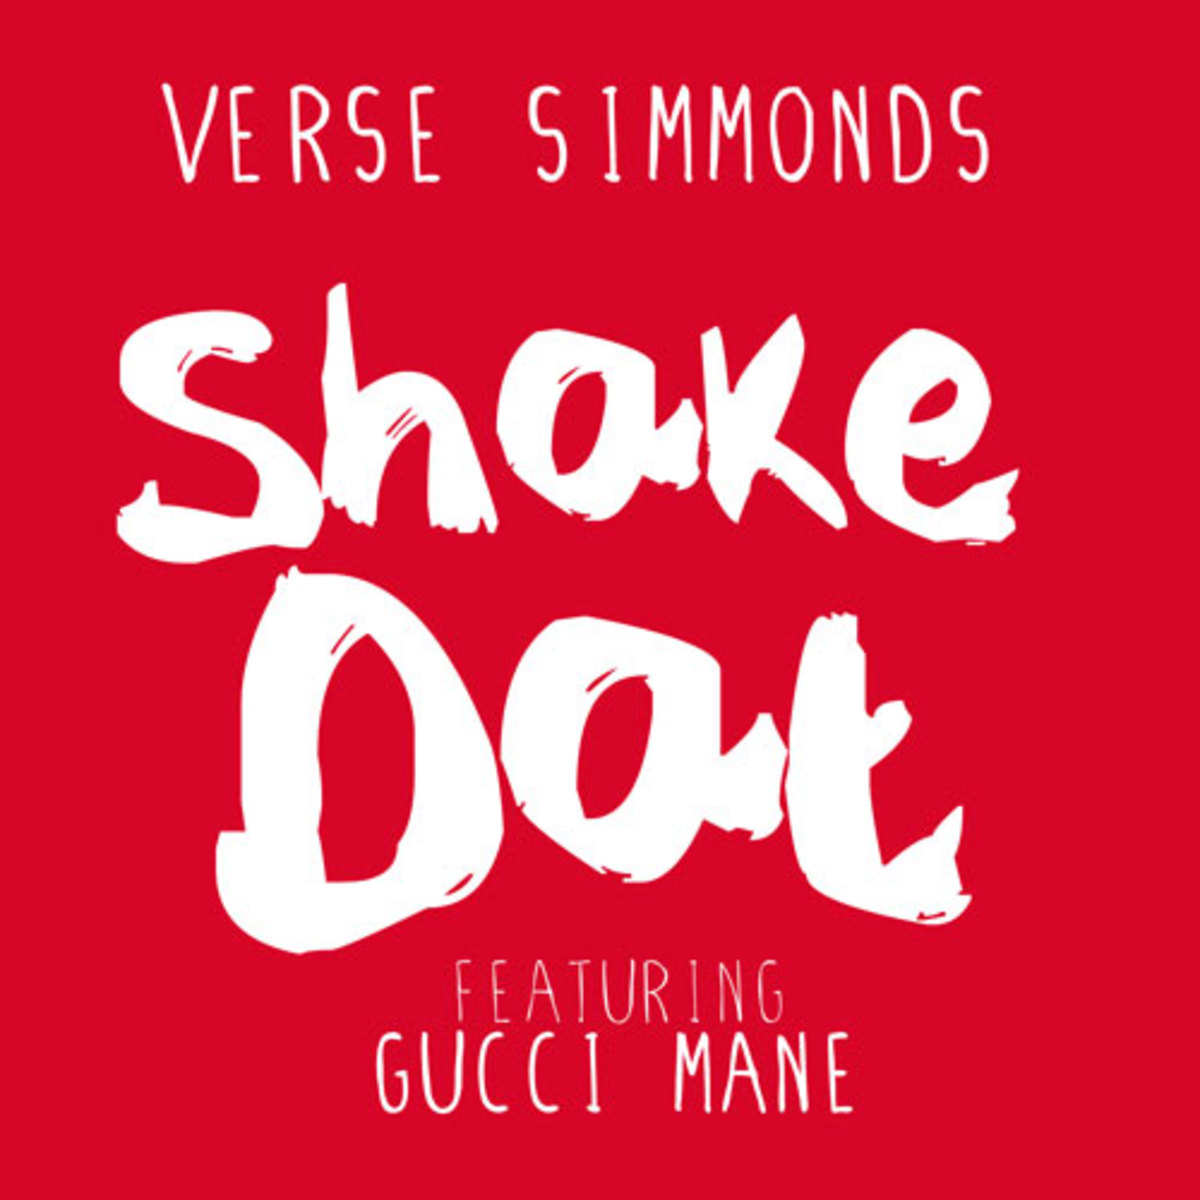 versesimmonds-shakedat.jpg